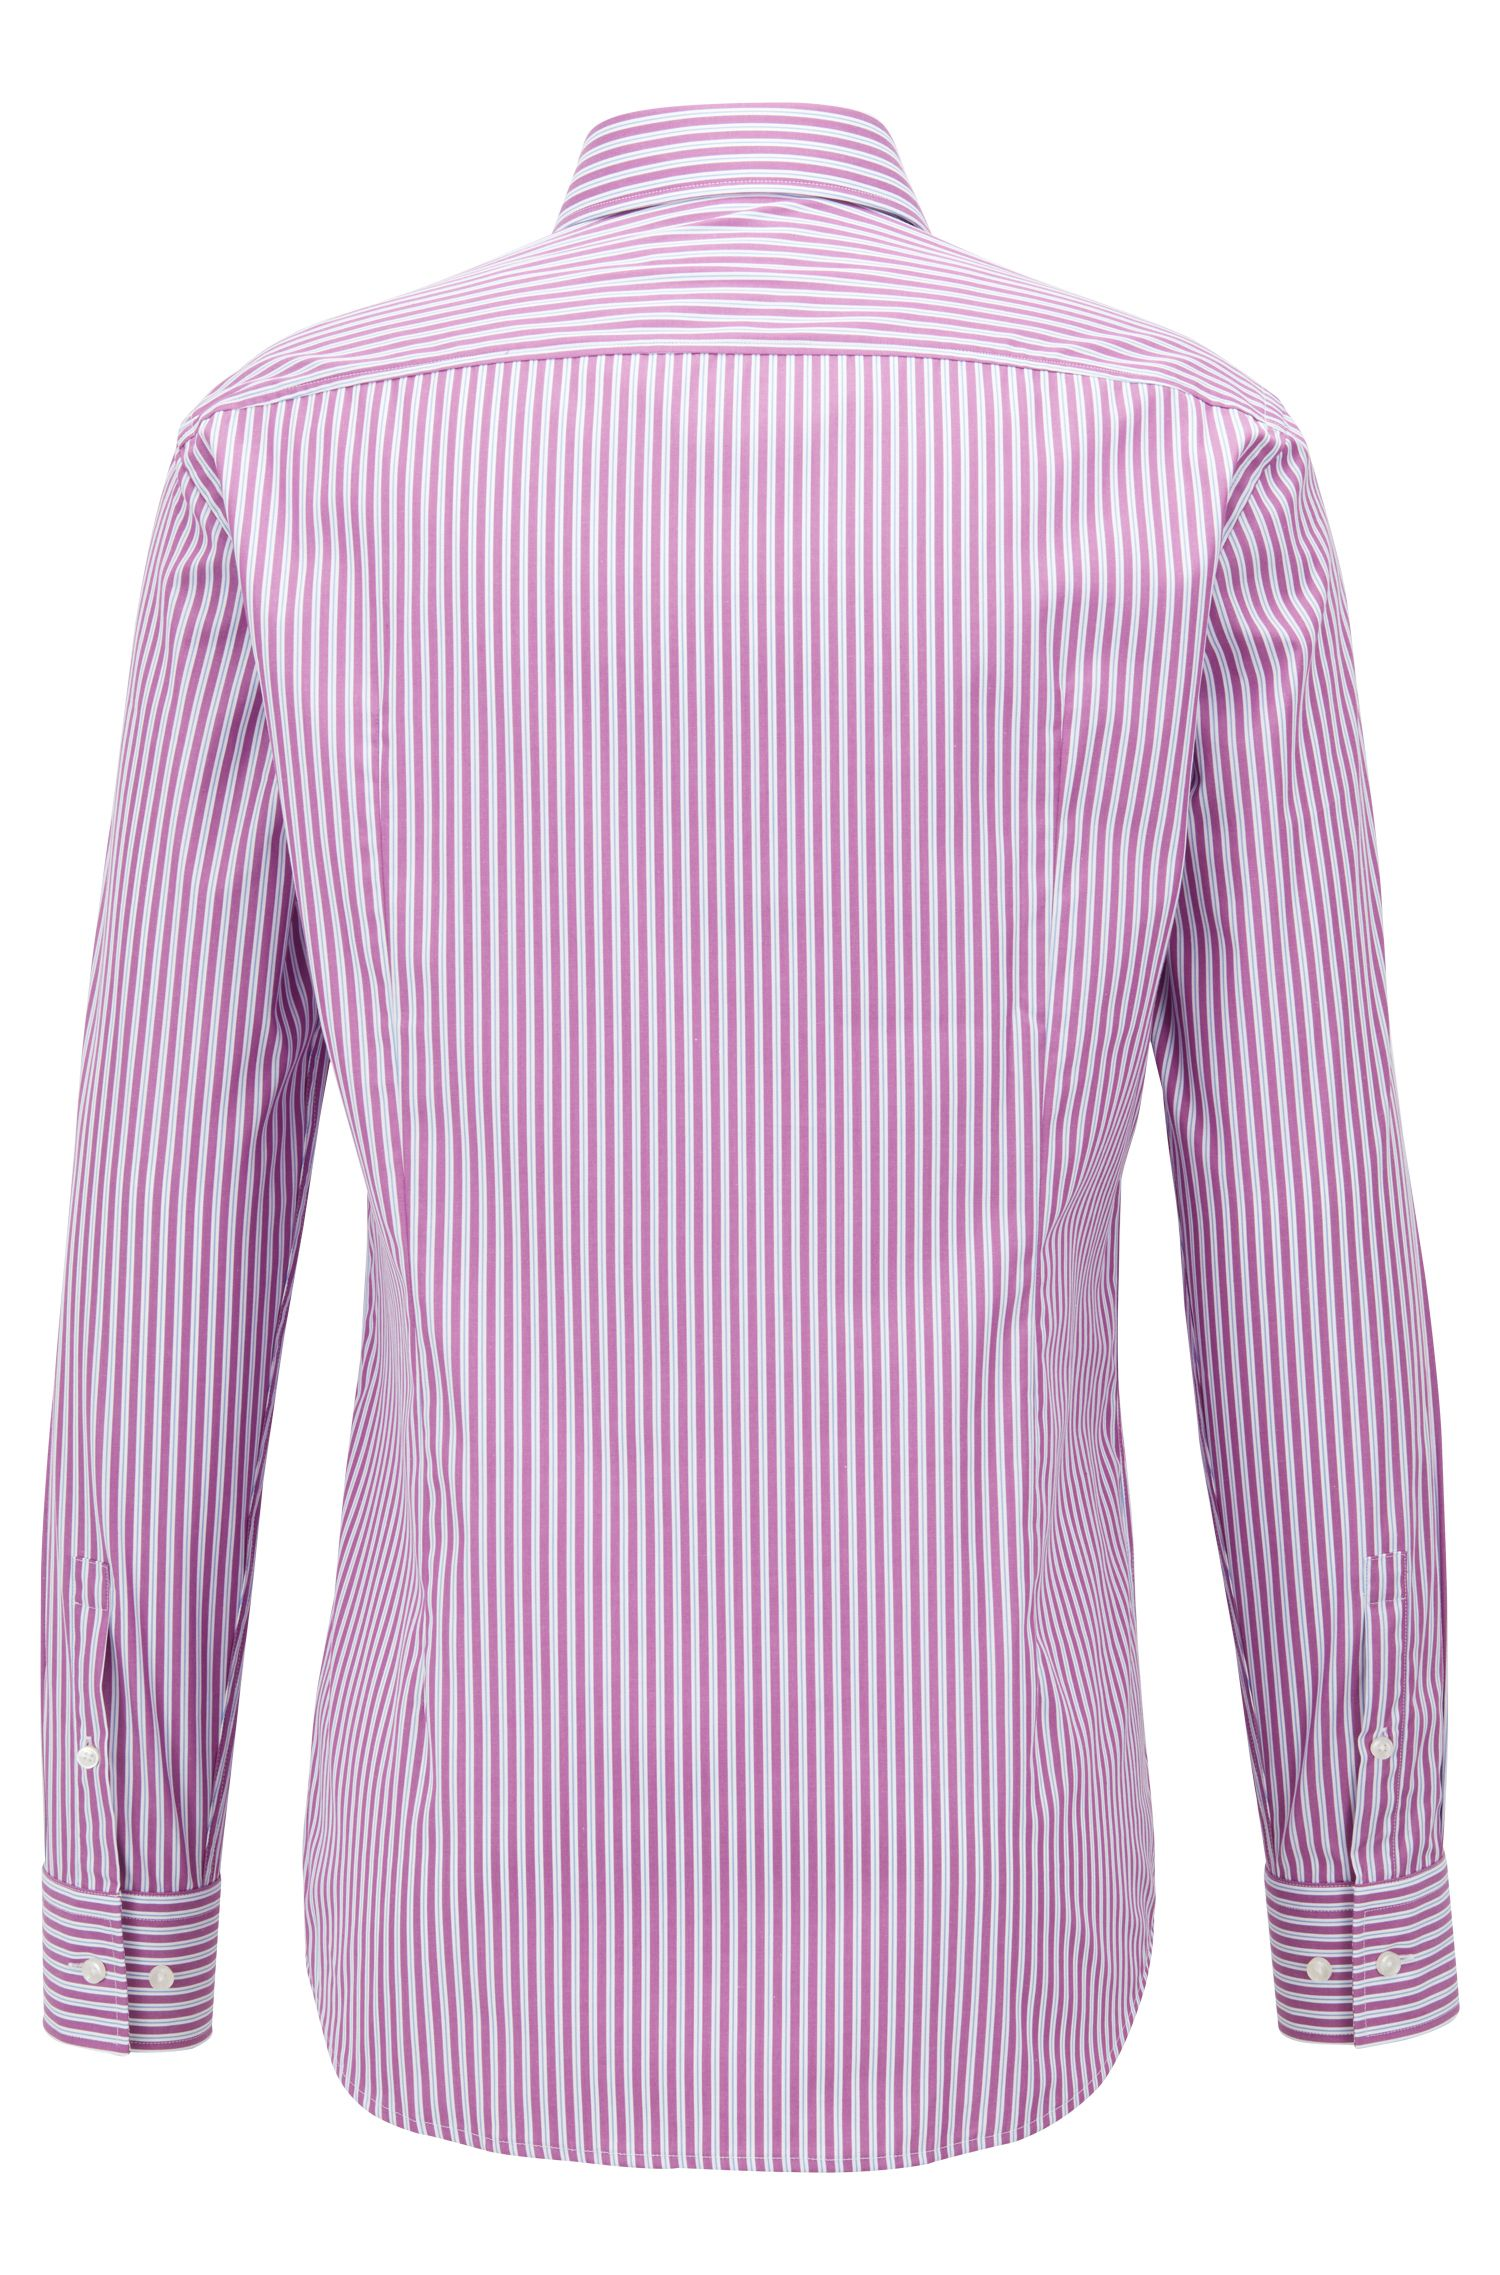 Slim-fit shirt in easy-iron striped cotton poplin, Dark pink